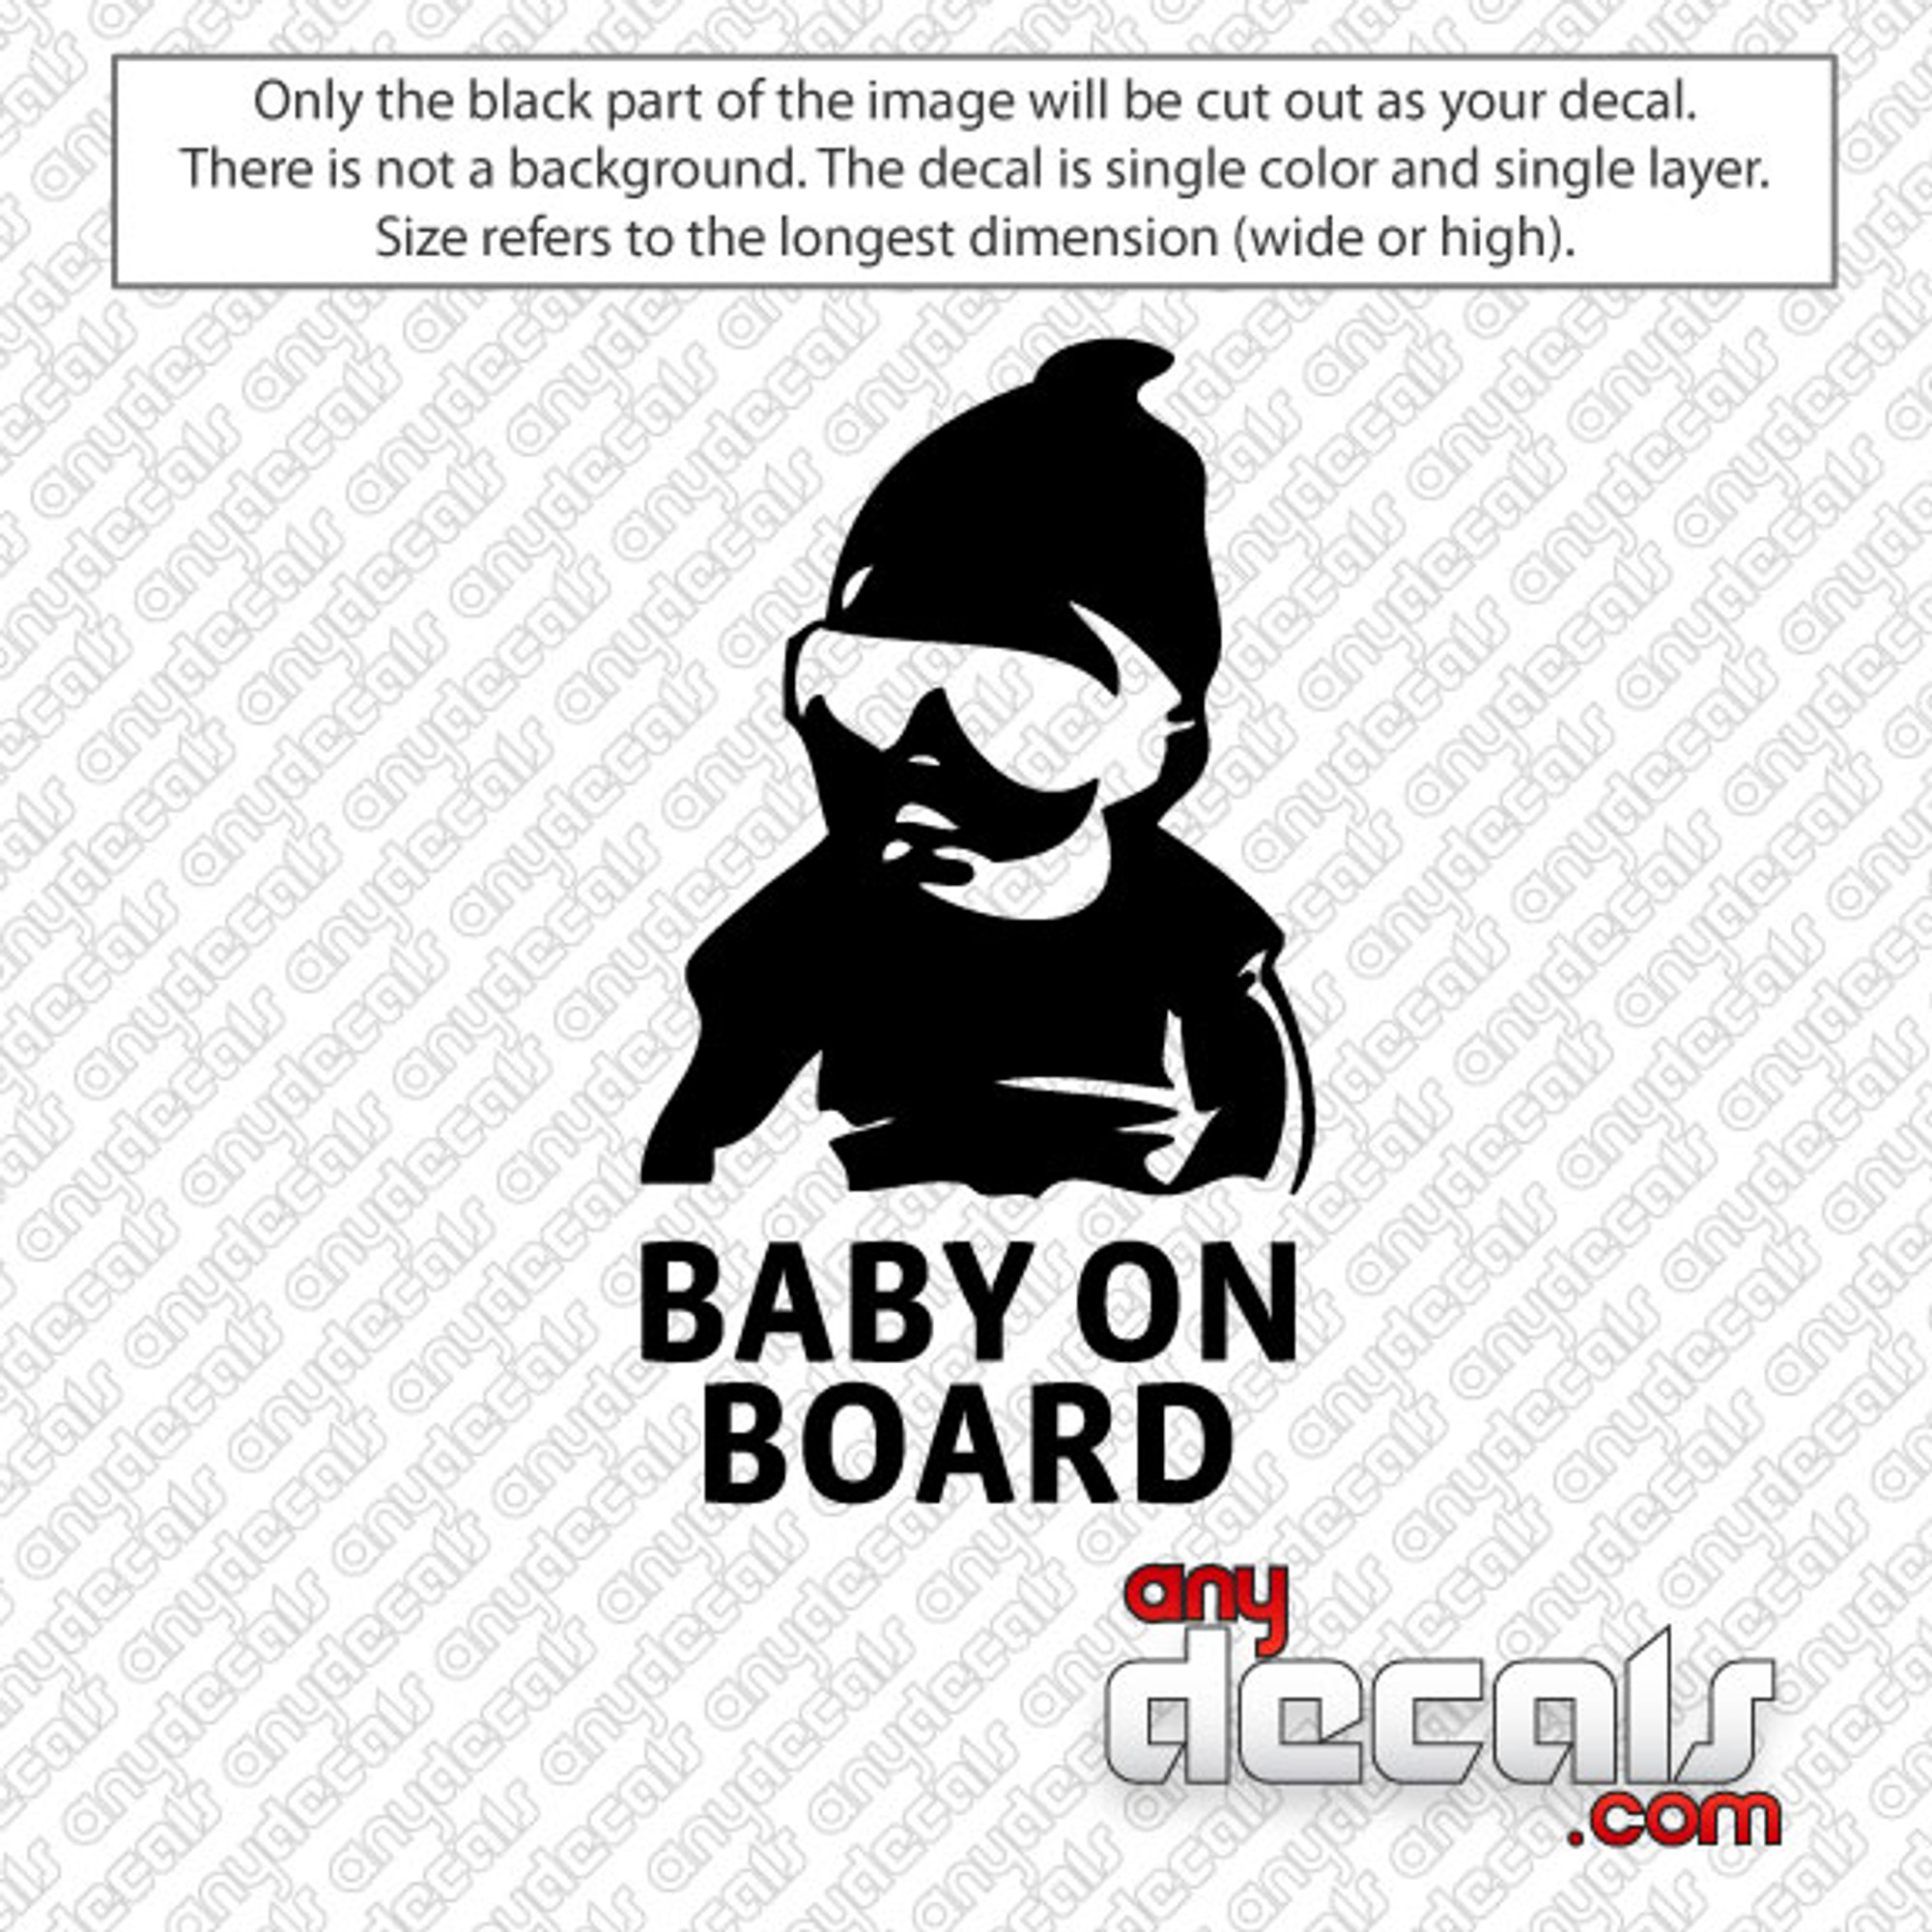 Carlos Baby On Board Hang Over Car Decal together with Metal Gears Powerpoint Backgrounds moreover Wall Sticker Misu Flower 1567 additionally 568790627919268750 further Penguins Hockey Symbol. on lime green flowers